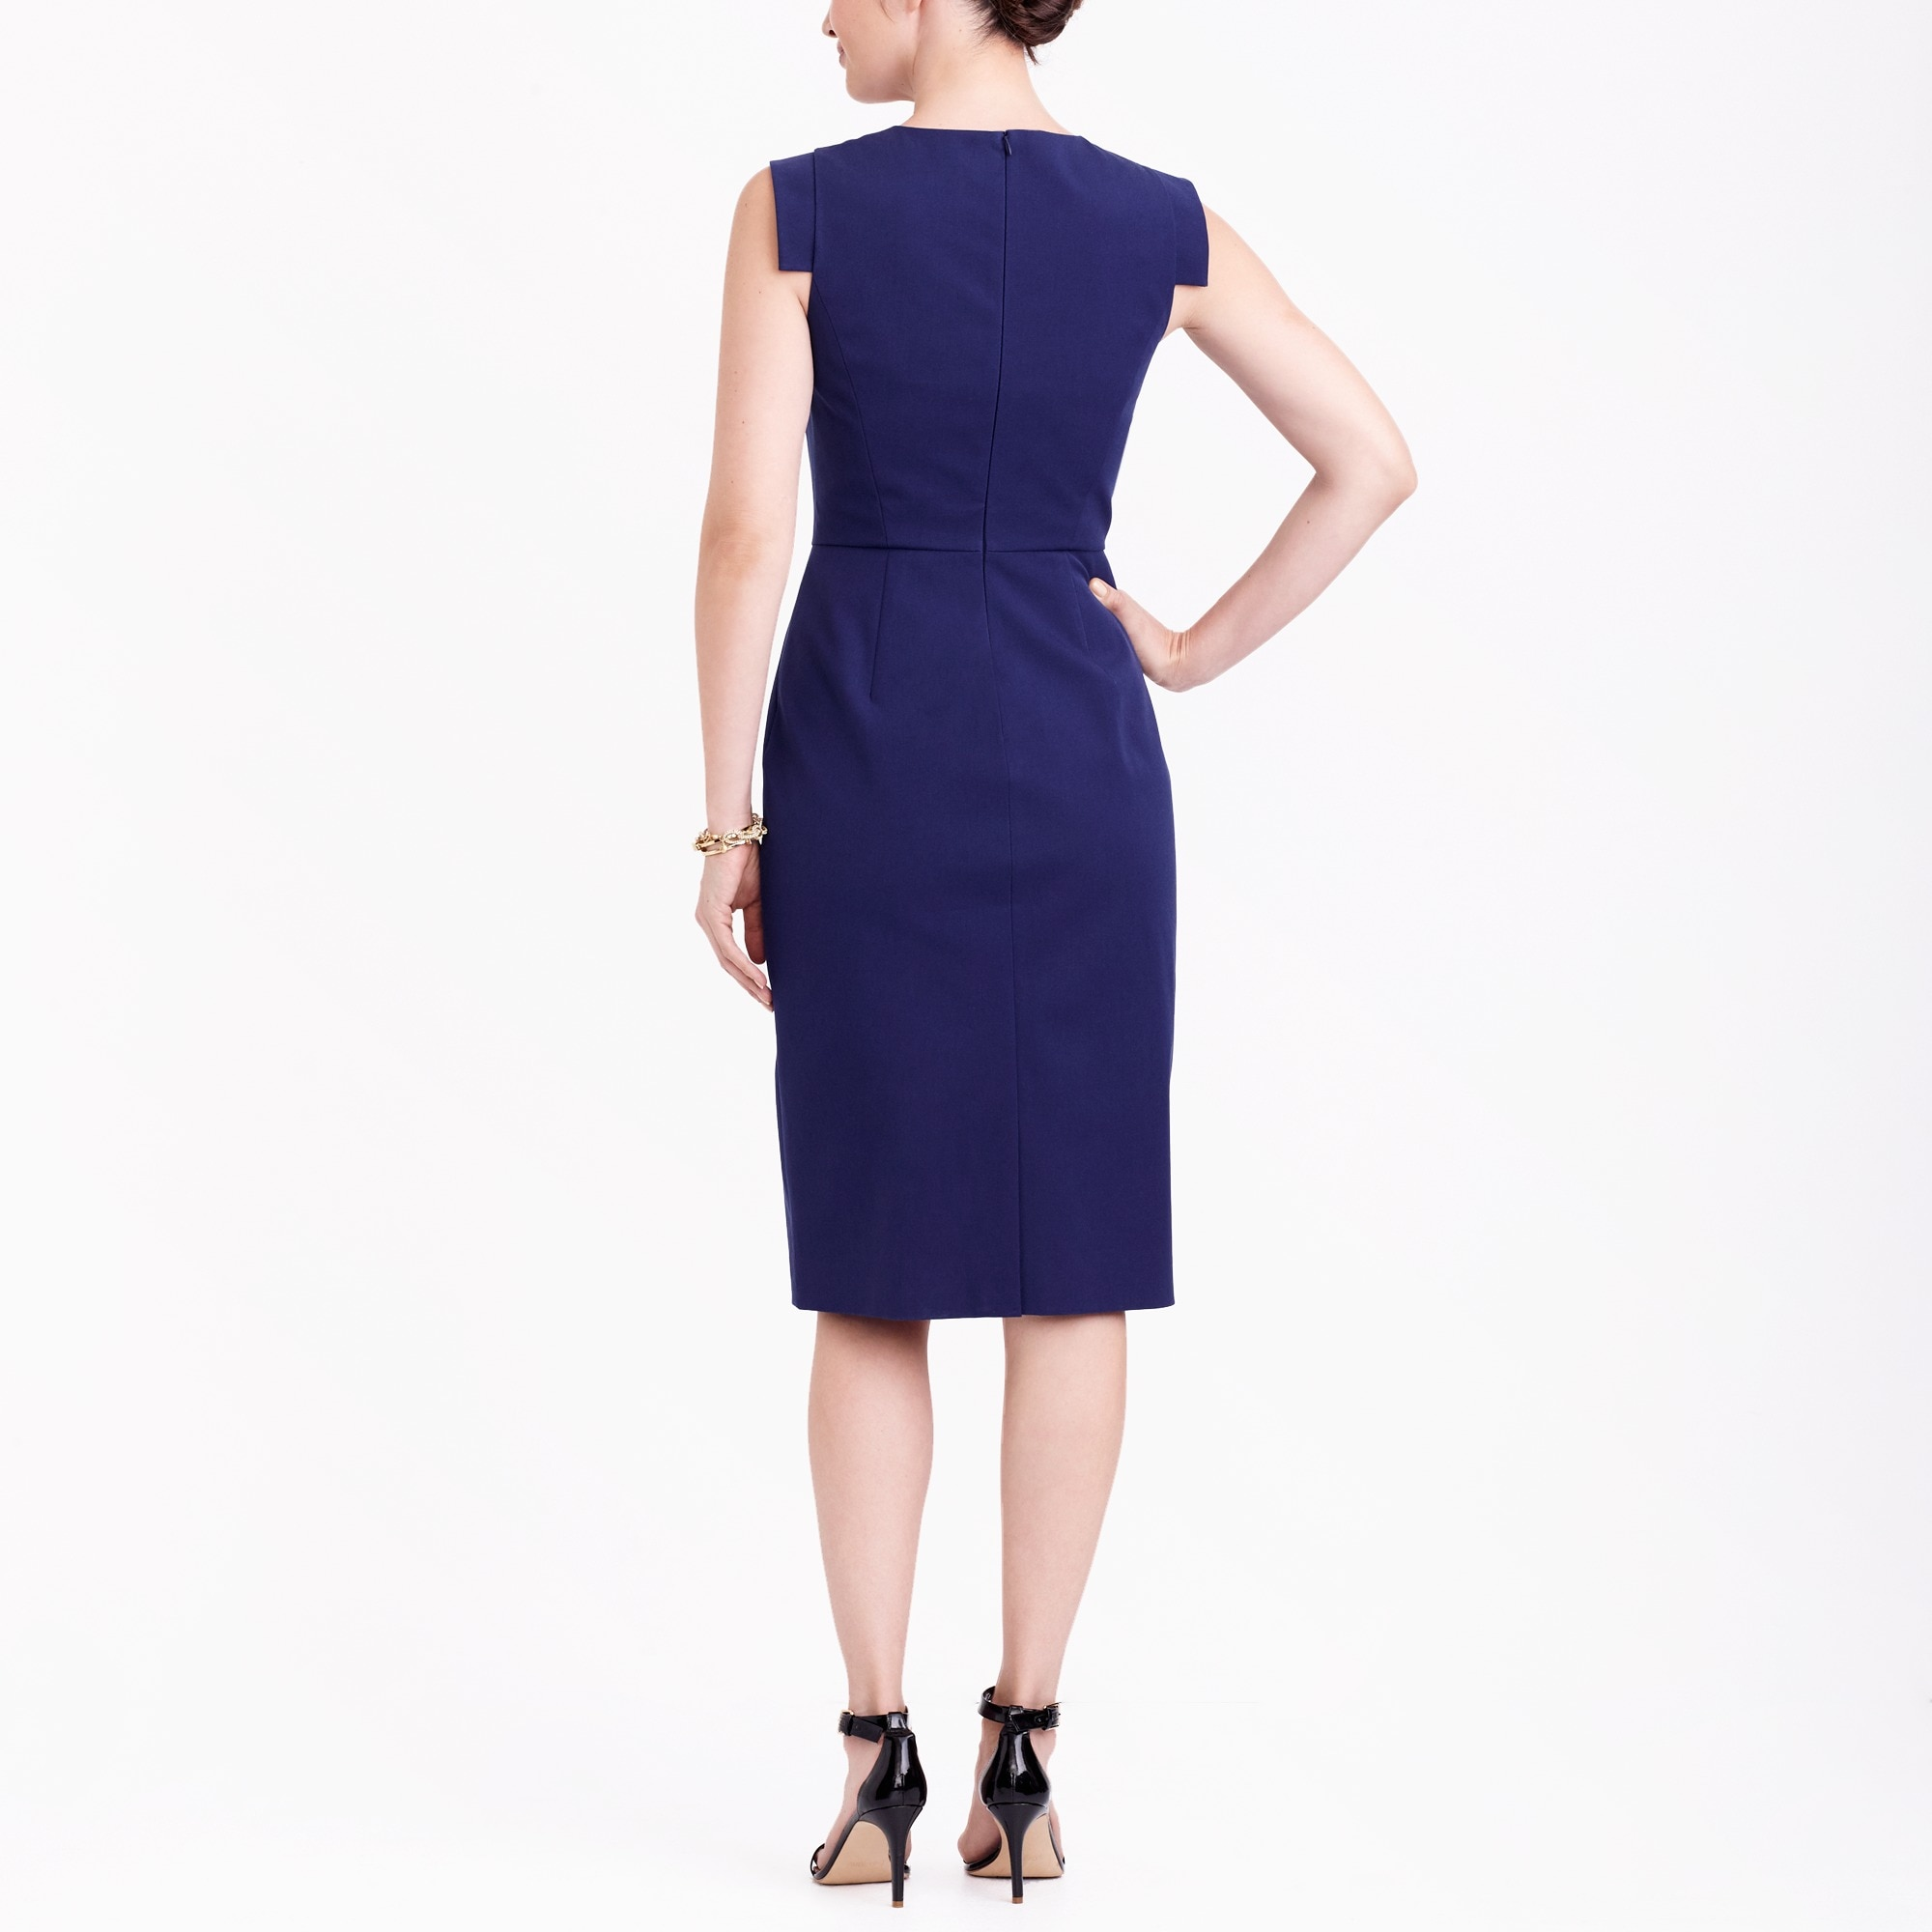 Image 3 for Cap-sleeve sheath dress